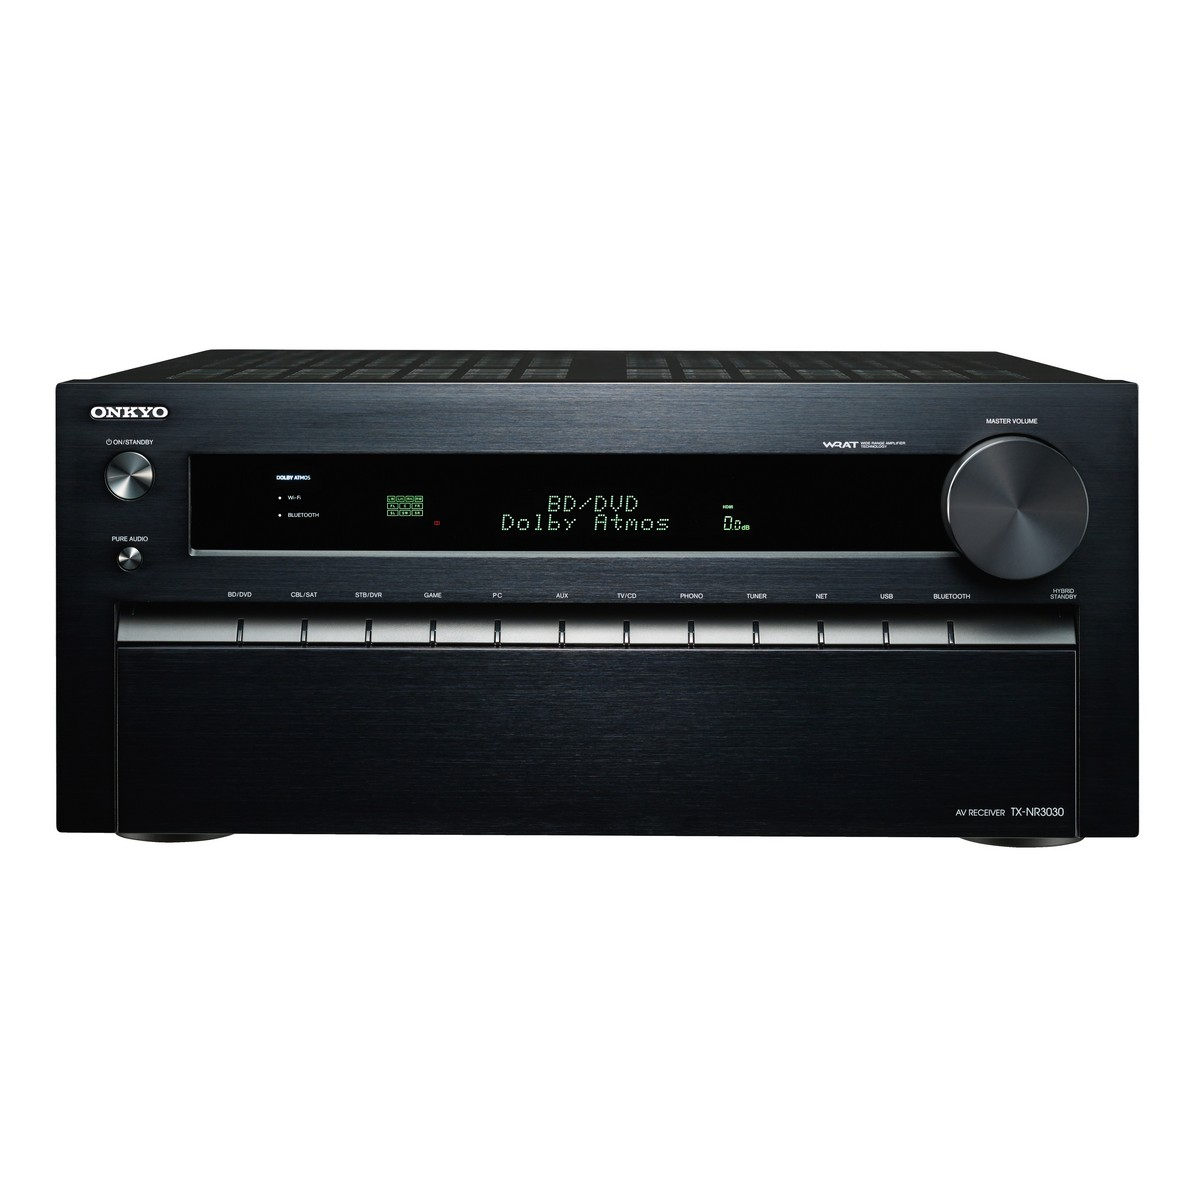 Onkyo TX-NR3030 | 11.2 Channel Dolby Atmos Network A V Receiver by Onkyo